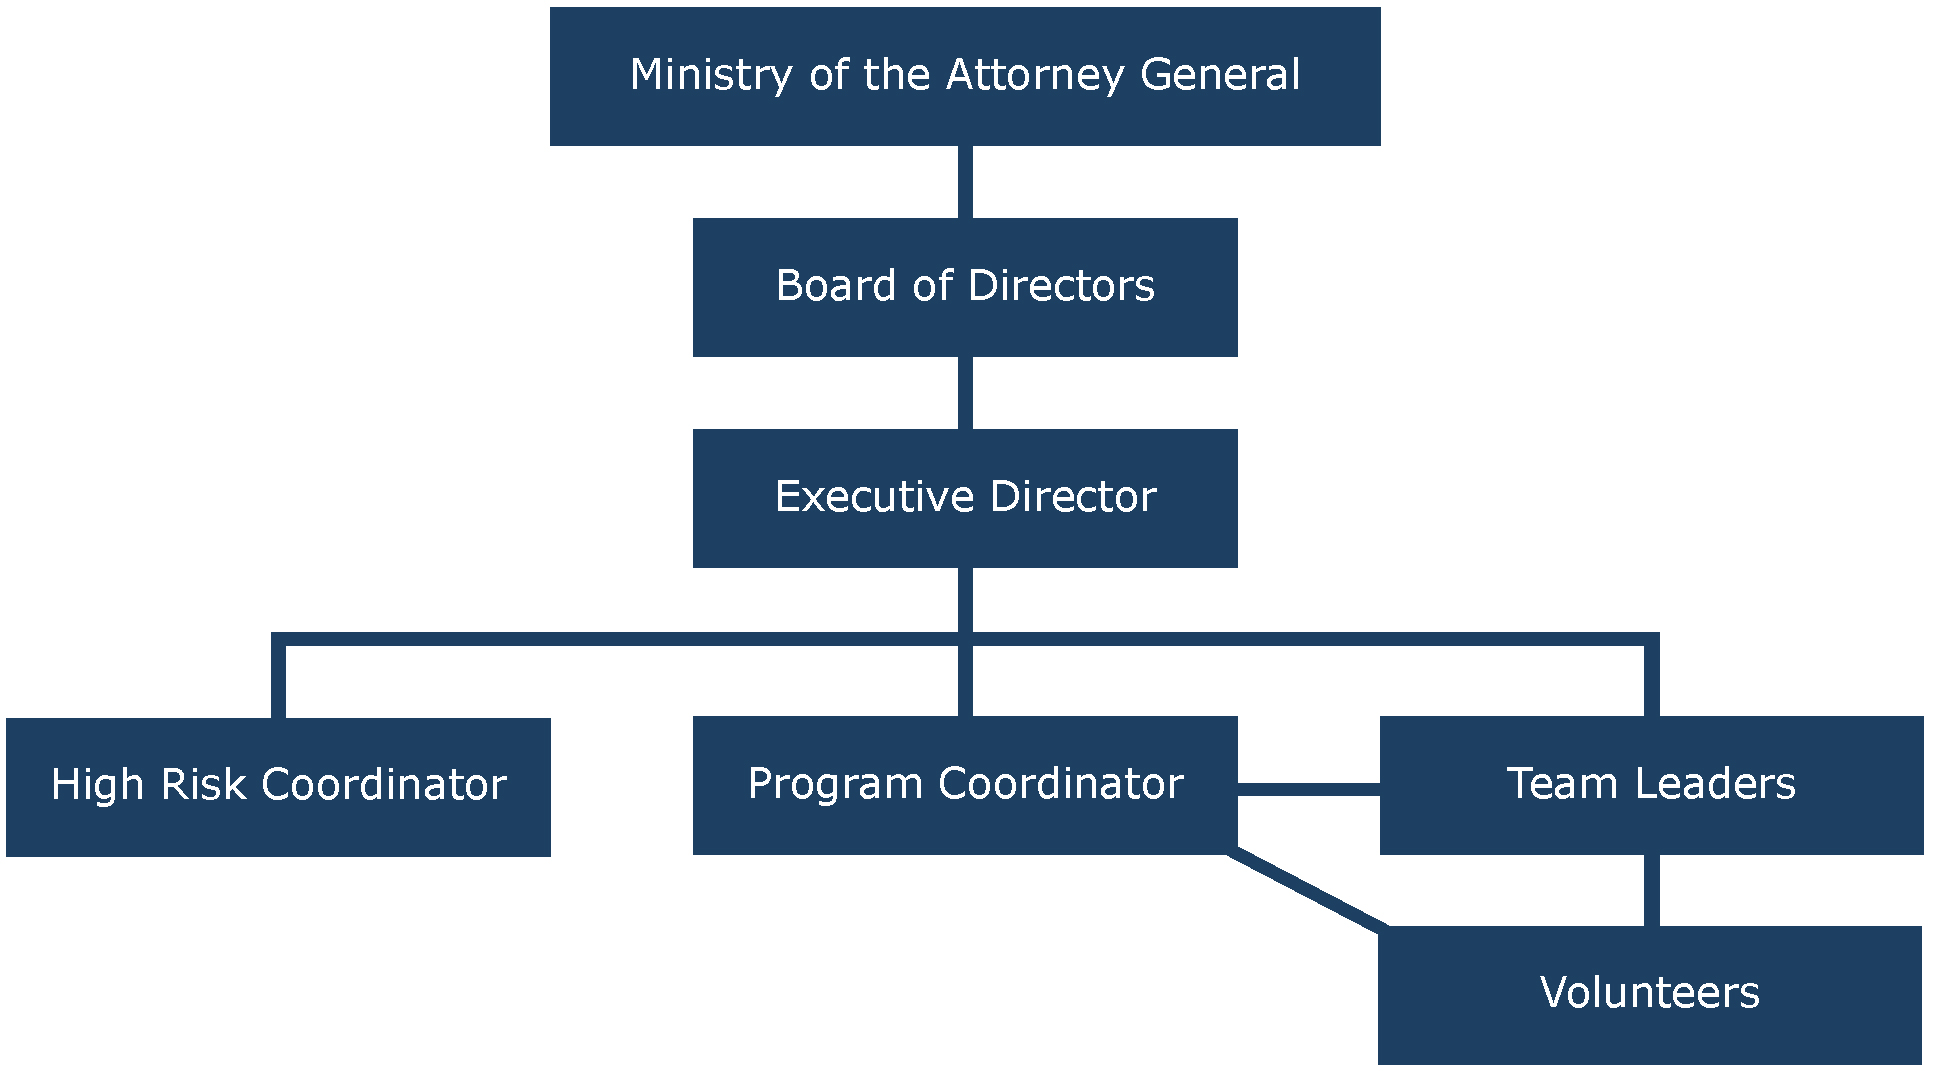 staff_and_directors_chart-01.jpg